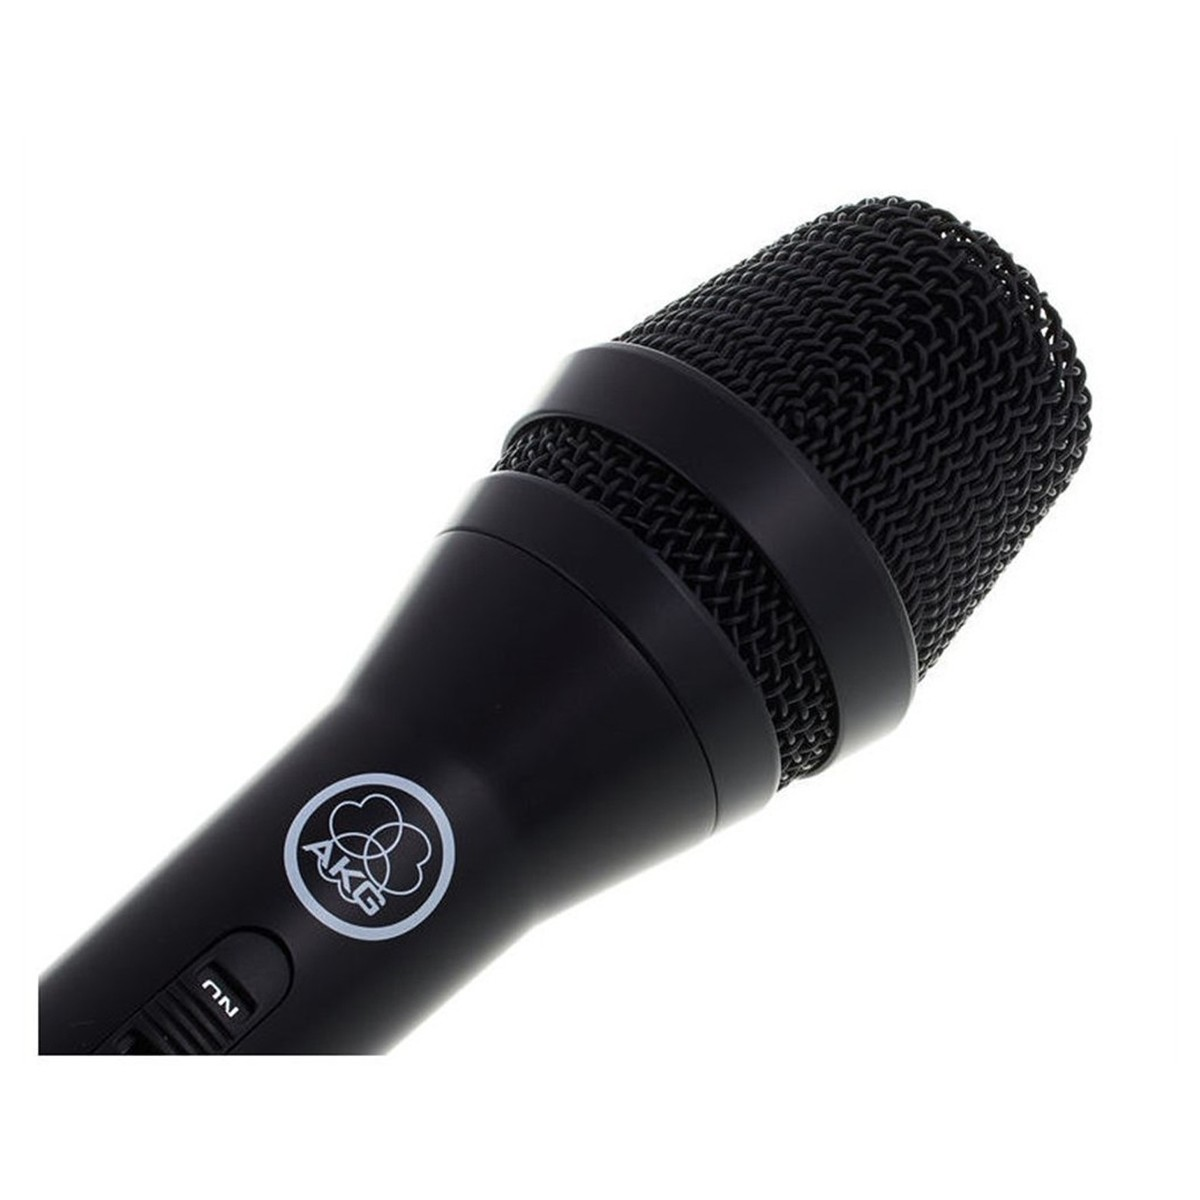 akg p3 s vocal and instrument dynamic microphone at gear4music. Black Bedroom Furniture Sets. Home Design Ideas